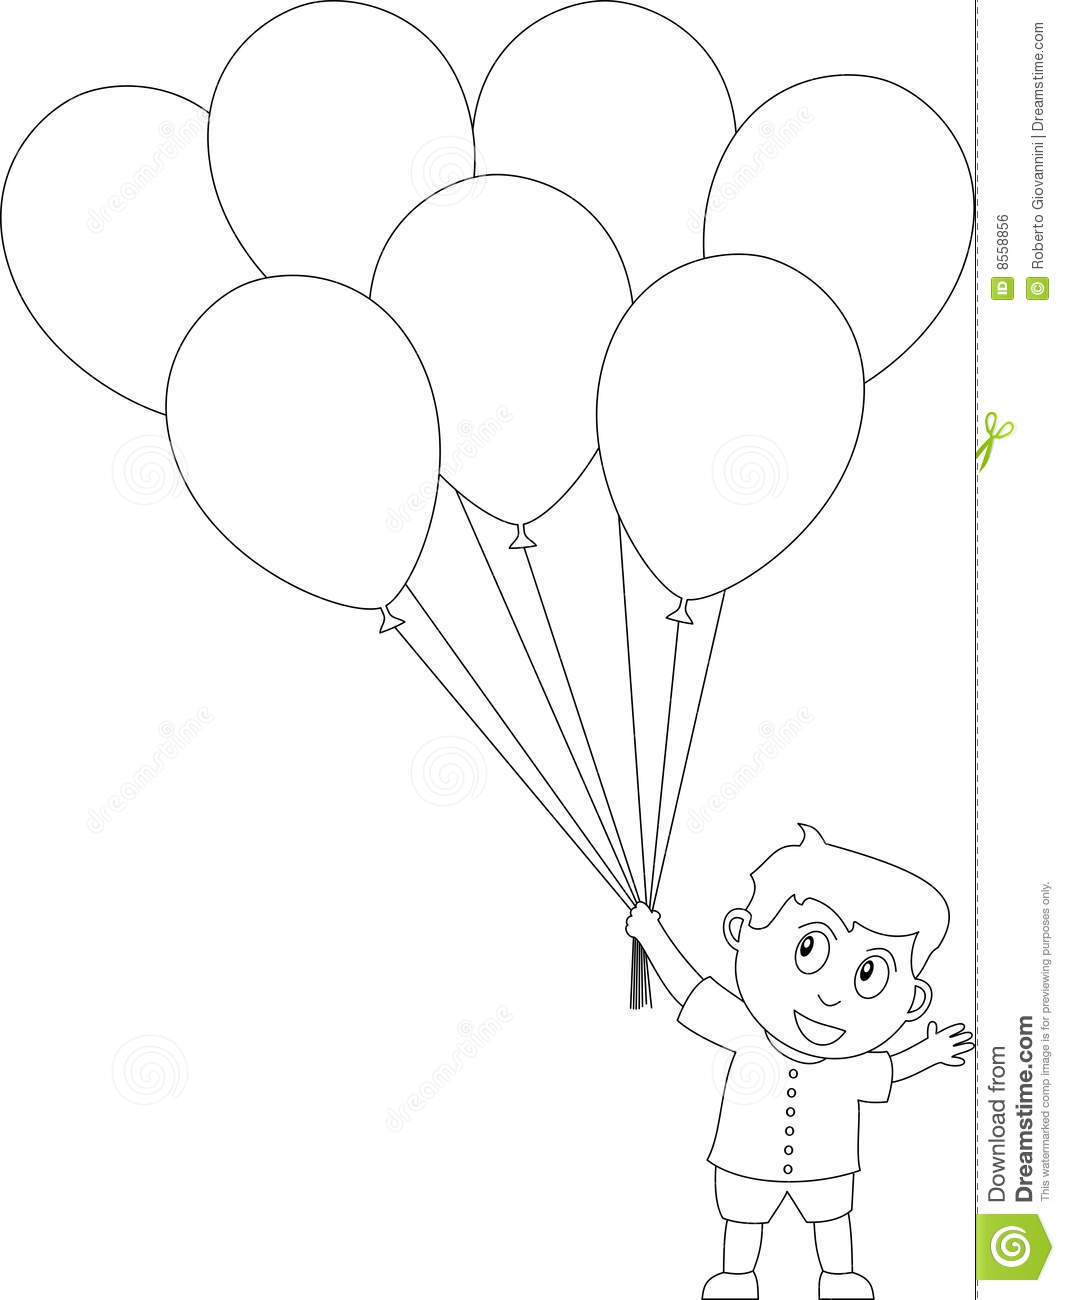 balloons book boy coloring colouring white baby child draw - Children Drawing Book Free Download